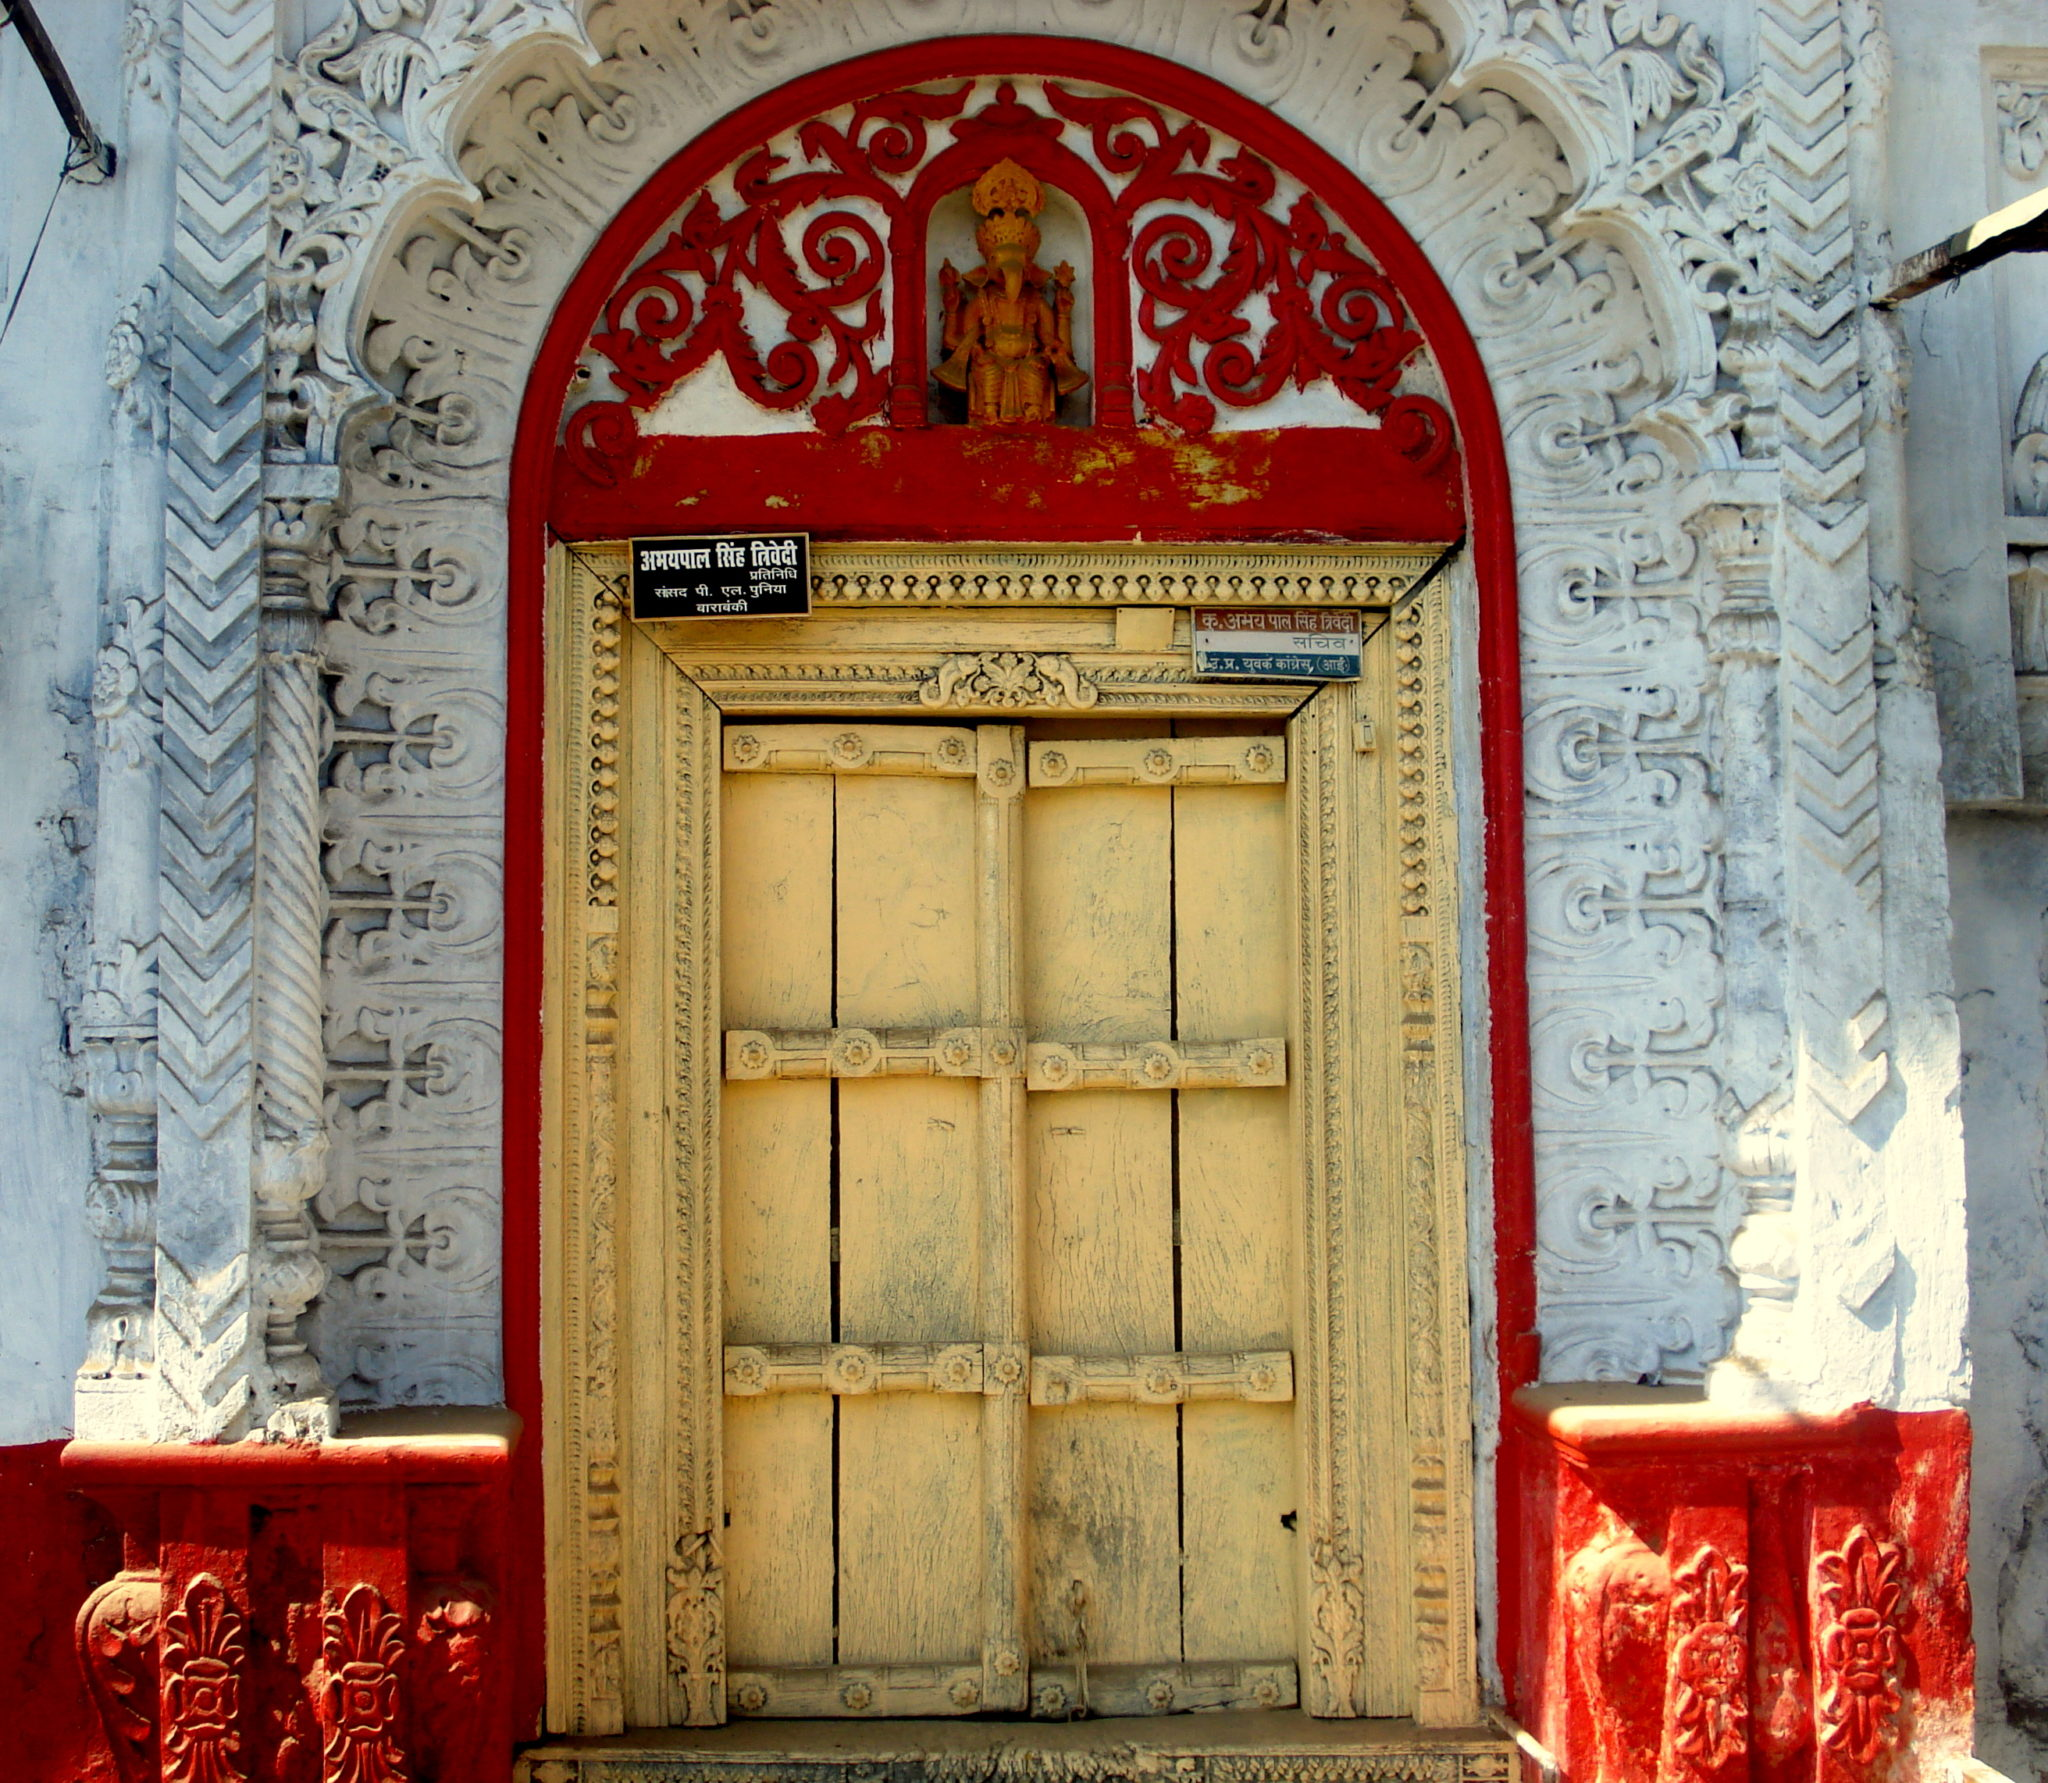 a decorated doorway of an old house